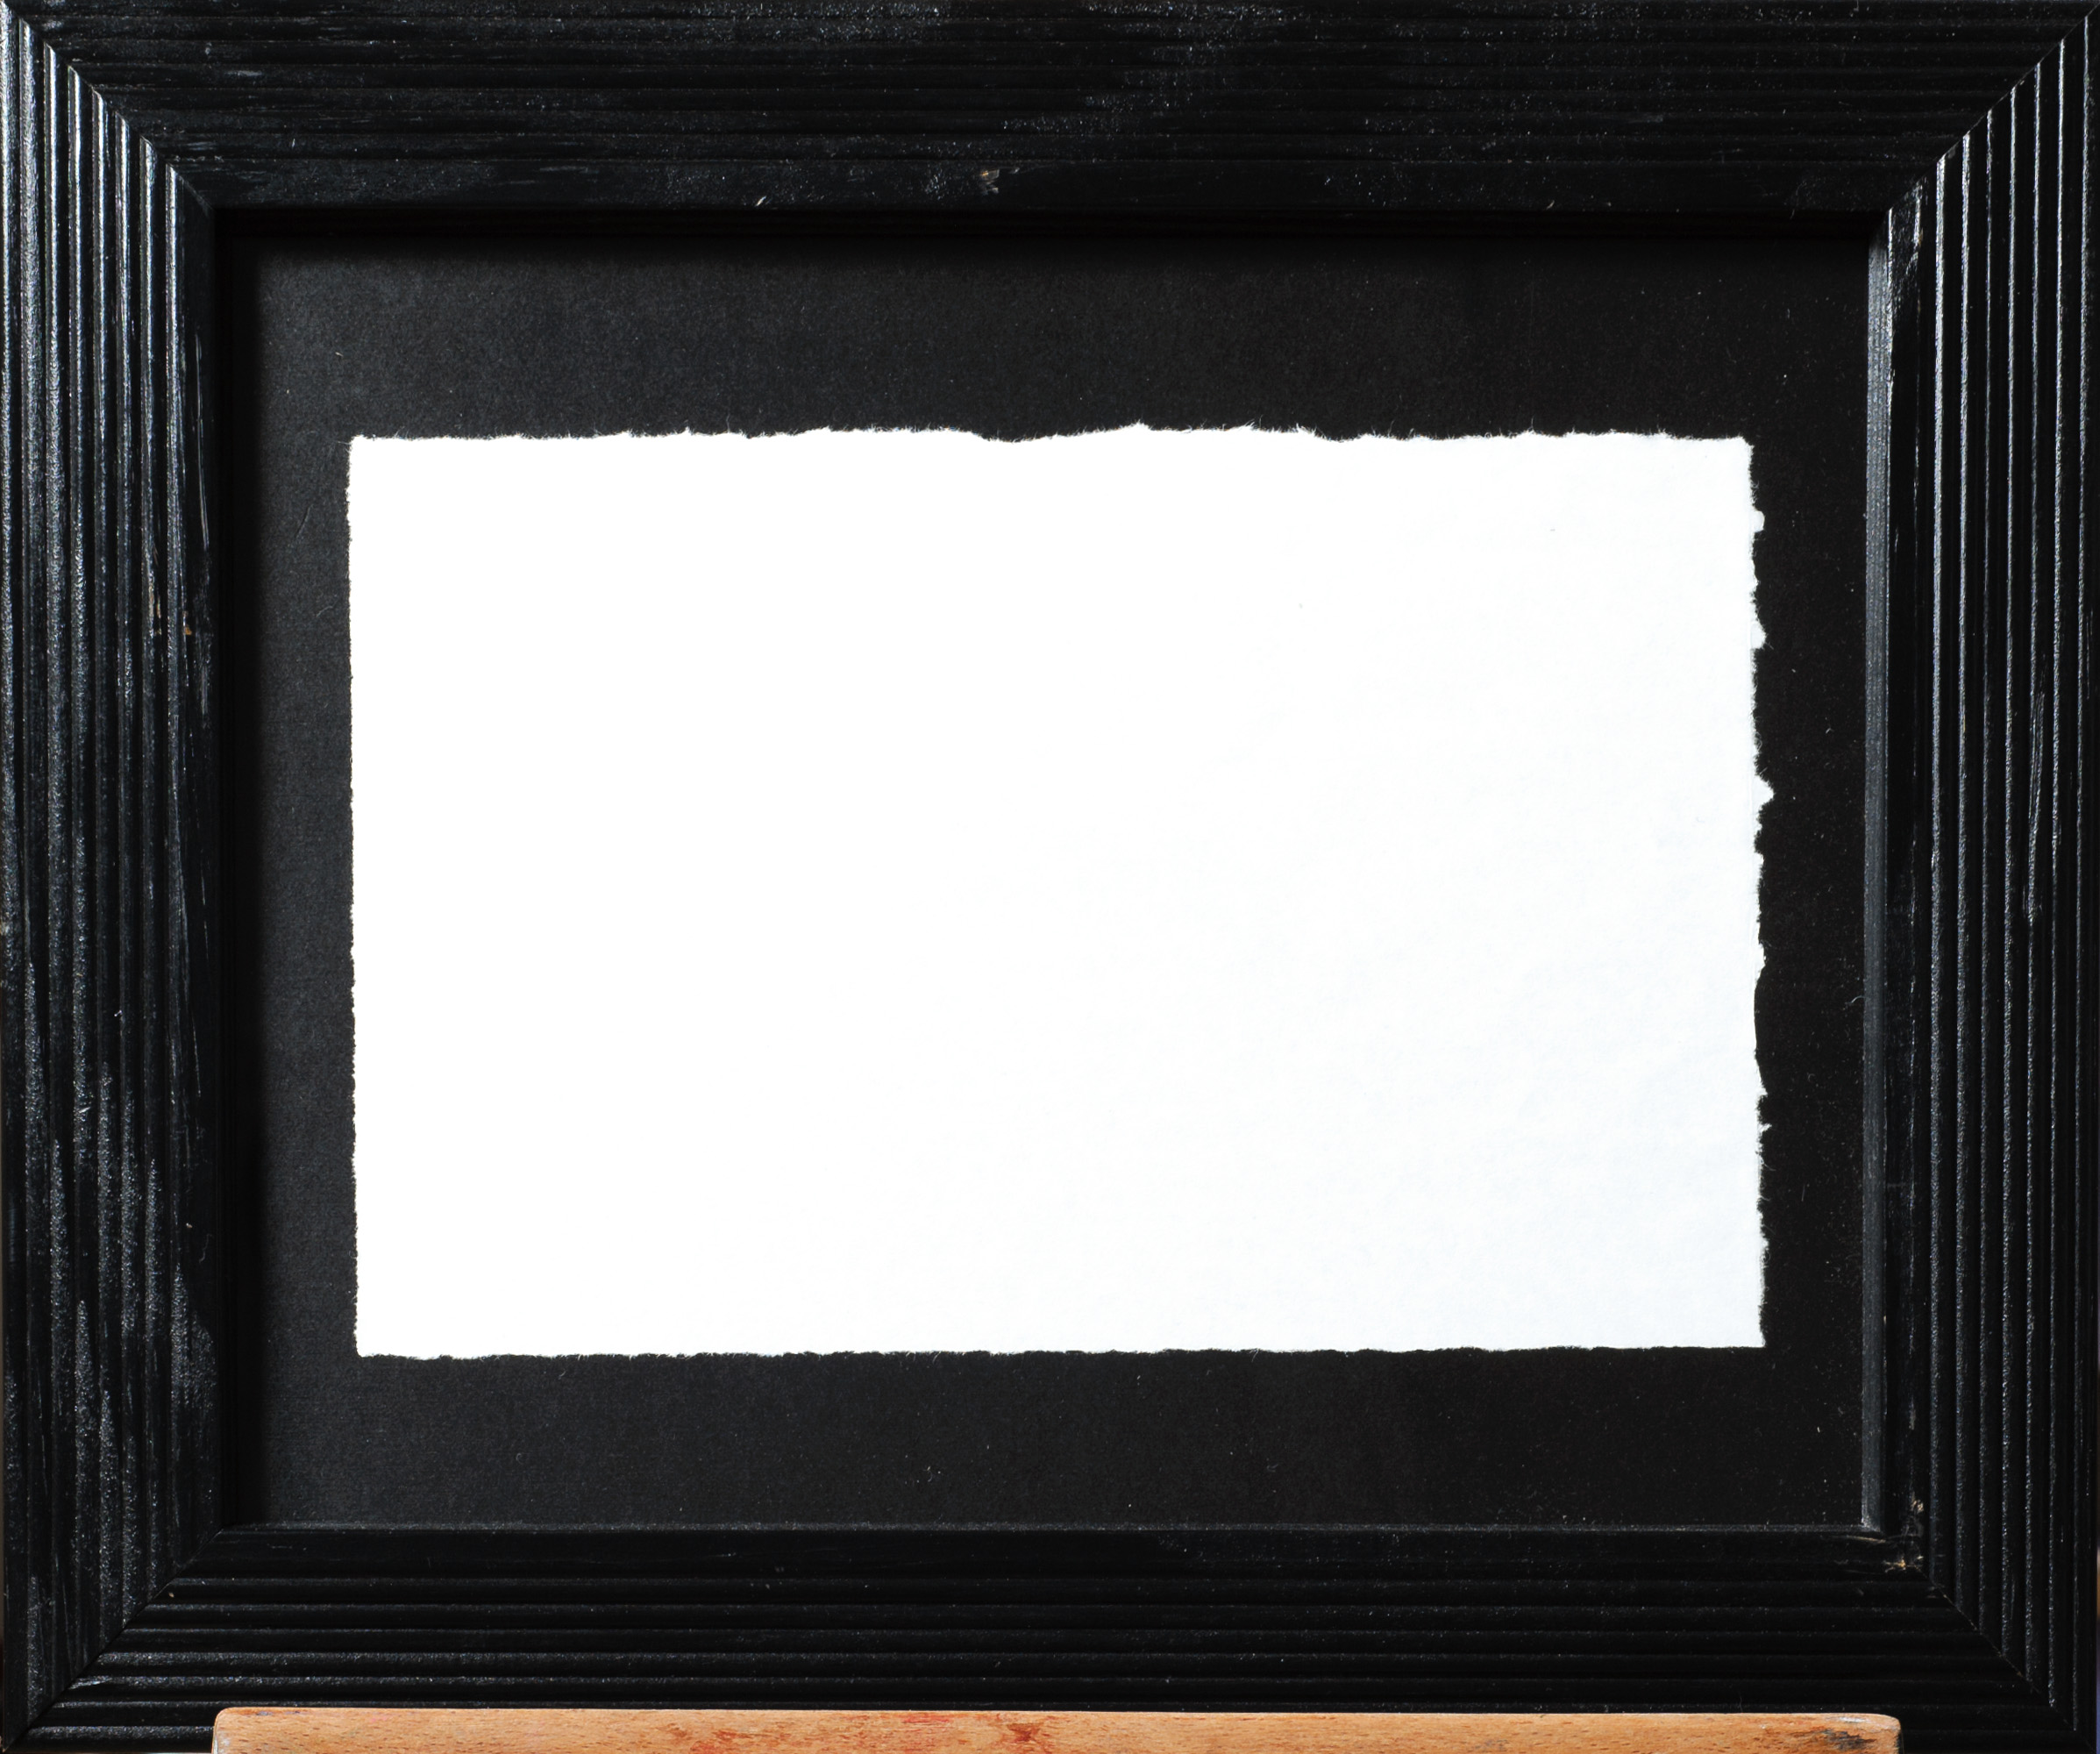 Lack of Consciousness, 2017, torn paper in frame, 10.5 X 12 inches, $300